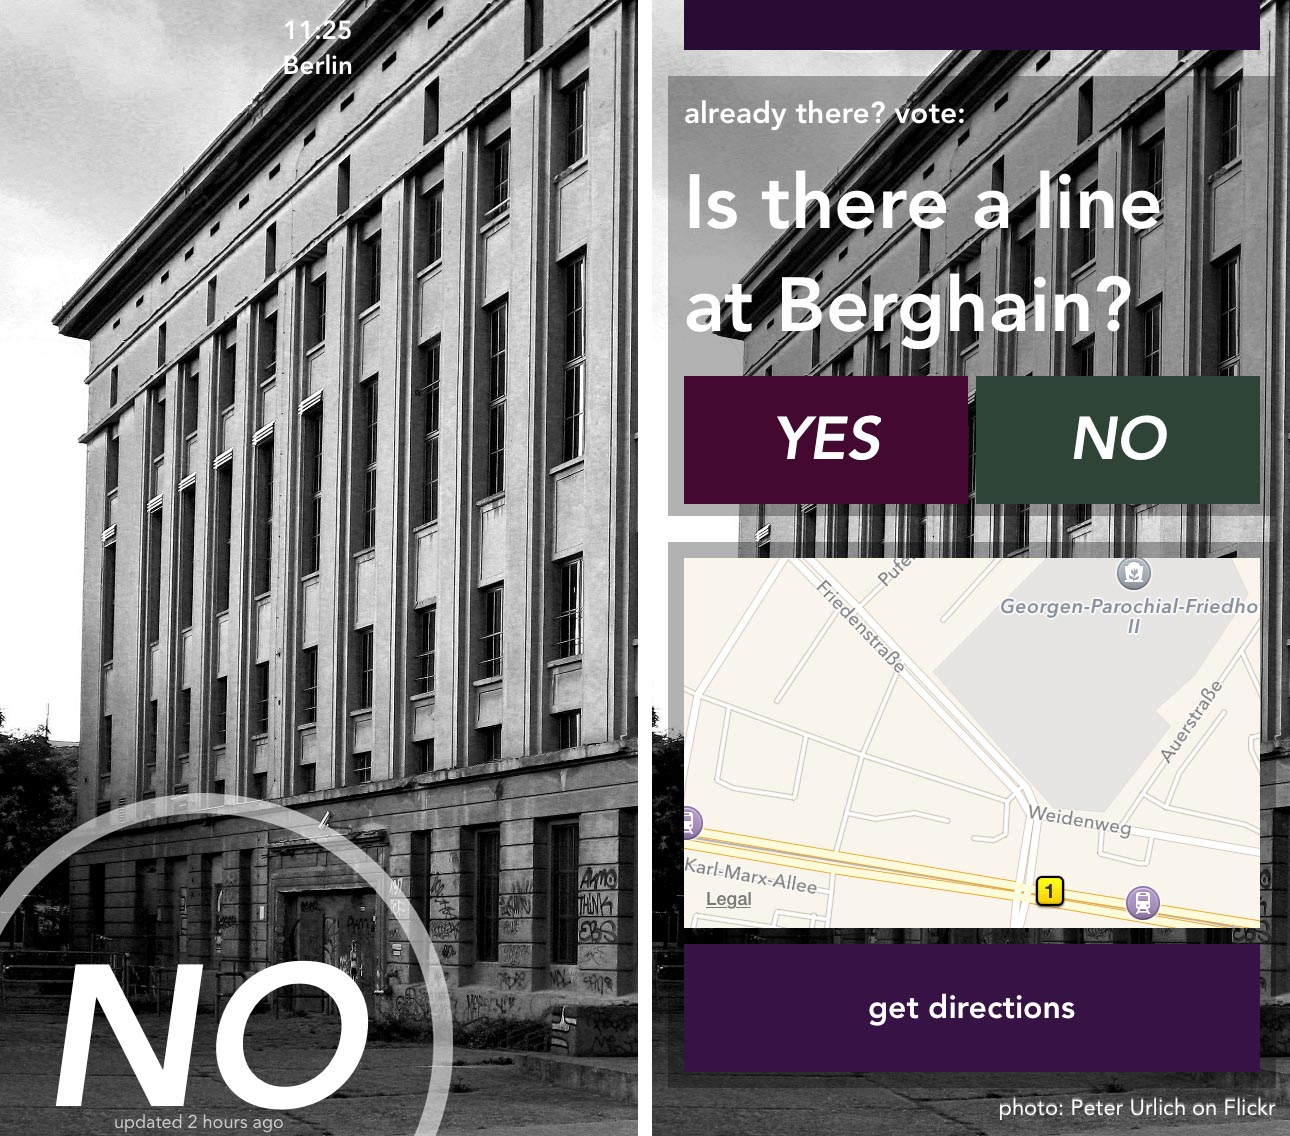 New Berlin App u2013 Is There A Line At Berghain? - andBerlin